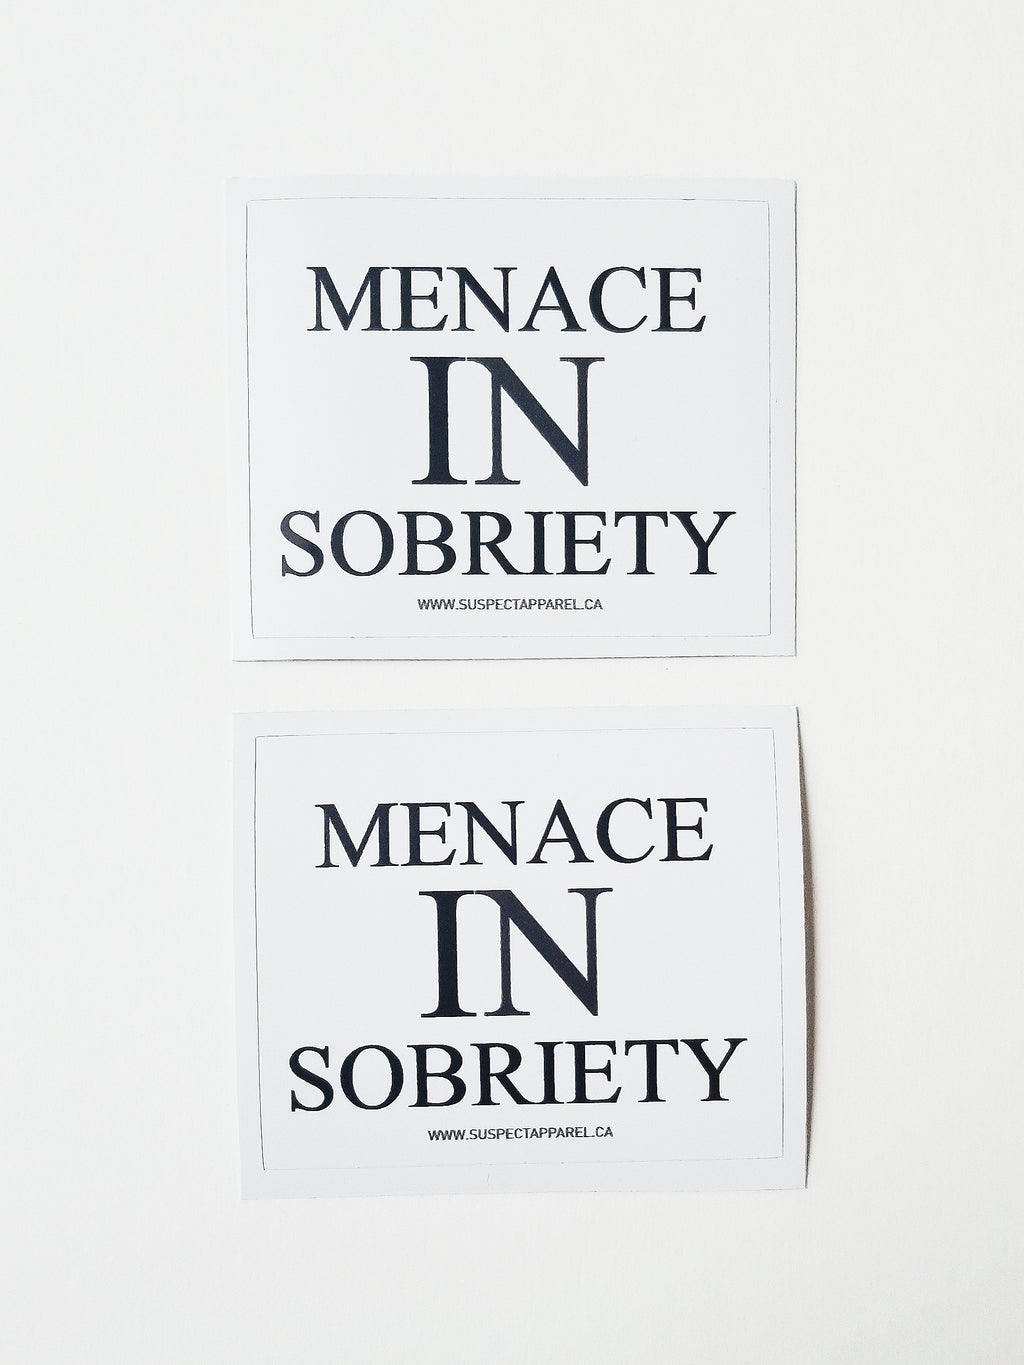 MENACE IN SOBRIETY